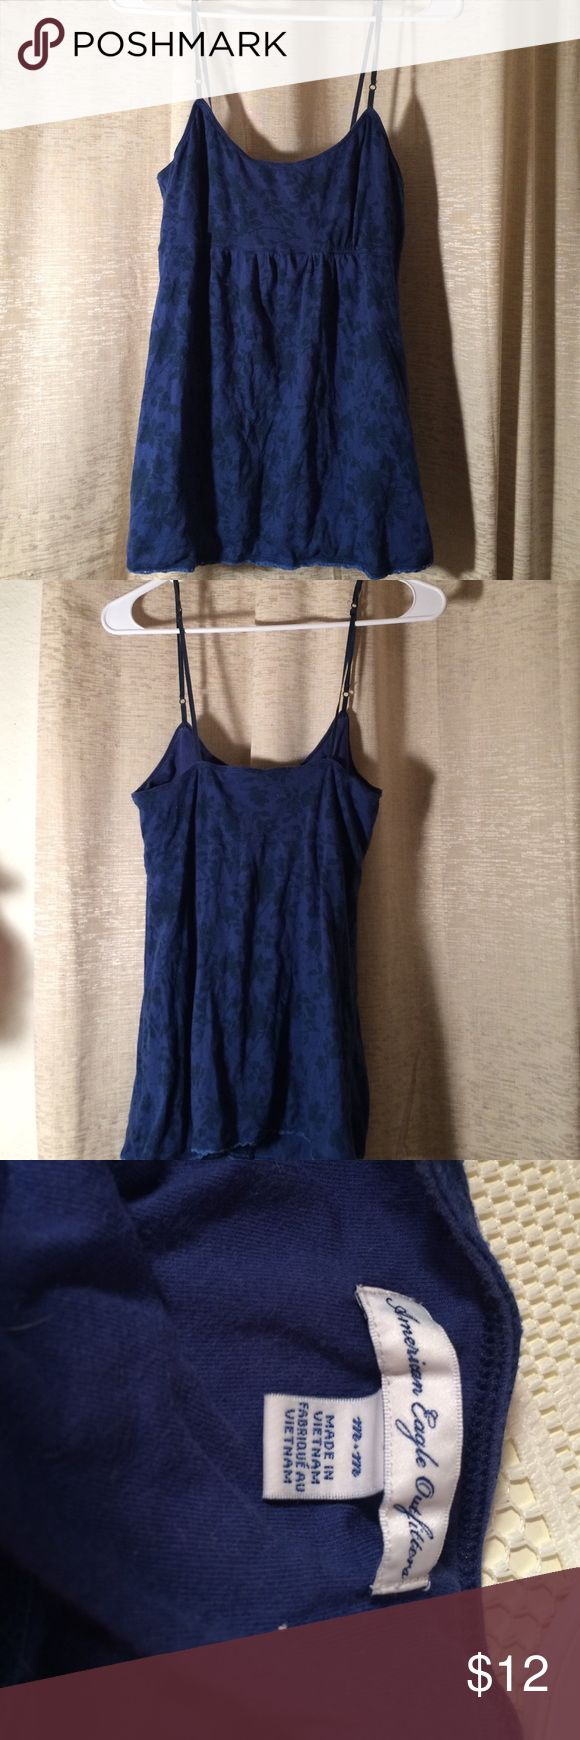 American Eagle Blue Scoop Neck Spaghetti Top M Perfect condition just missing size tag and has light bra lining and adjustable straps. American Eagle Outfitters Tops Camisoles